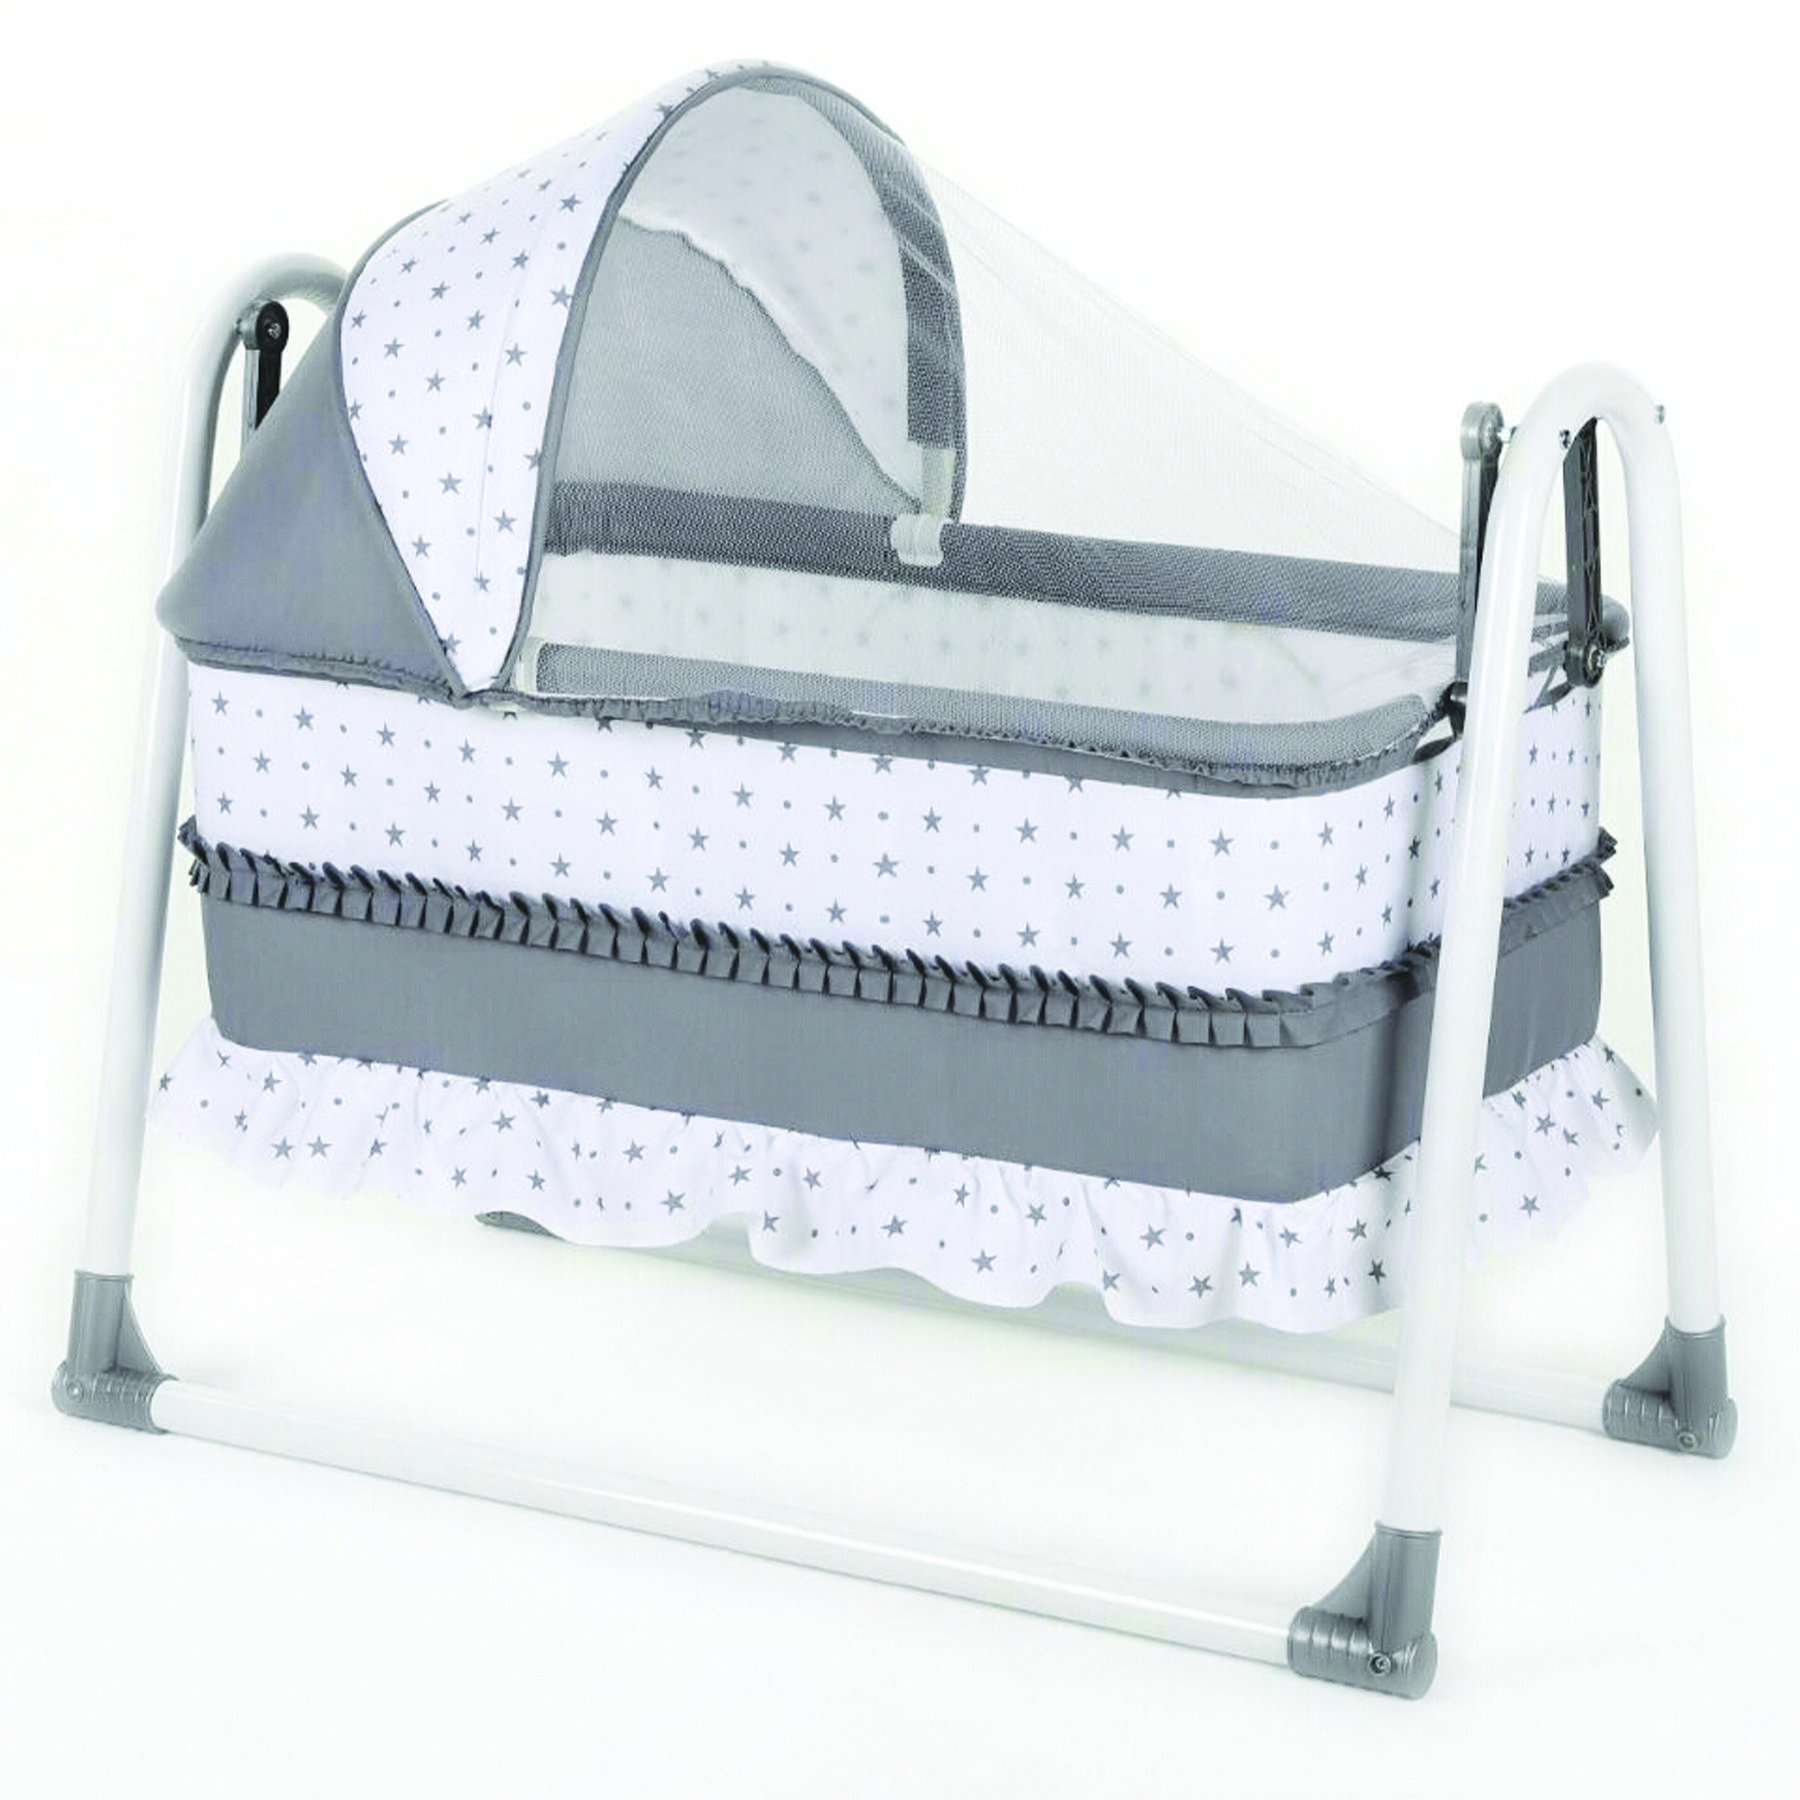 Bebegen Elite Portable Rocking Baby Crib Gray